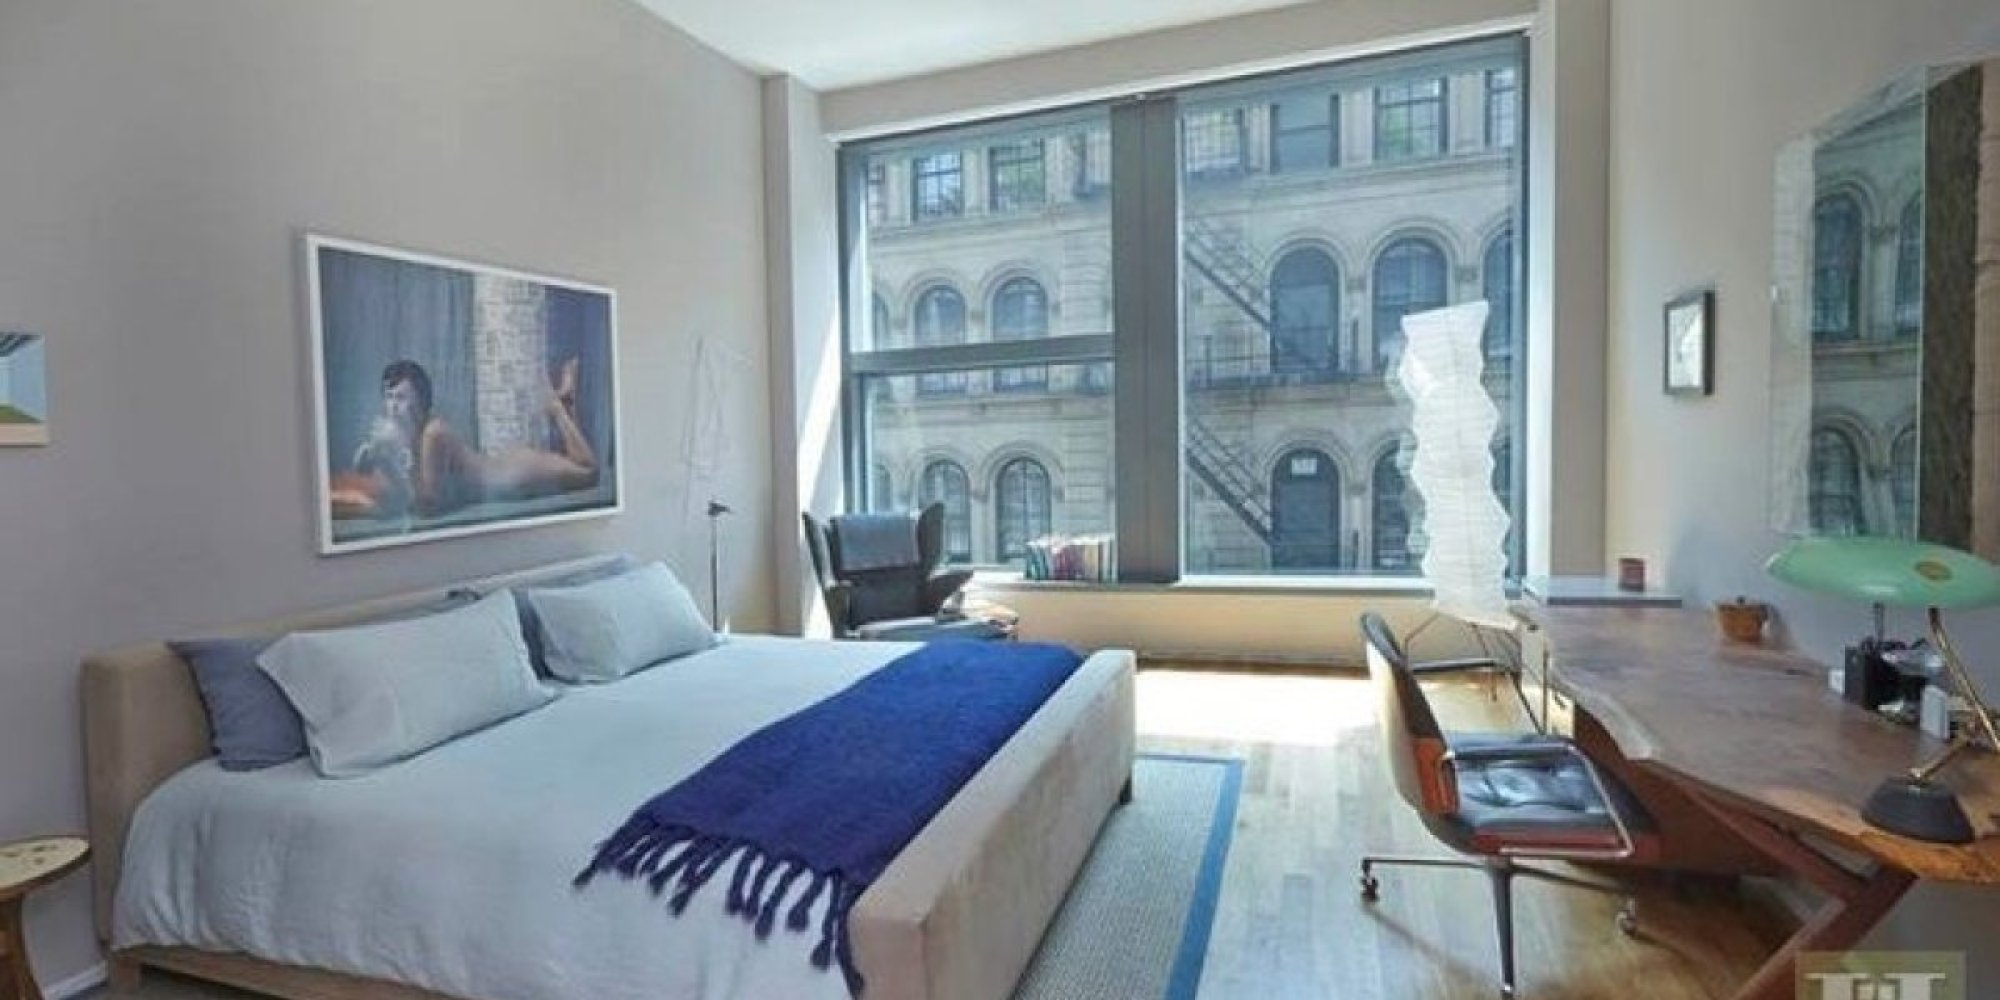 Soho House Nyc >> Daniel Radcliffe's NYC Apartment: See The Home Where Harry Parked His Broomstick | HuffPost